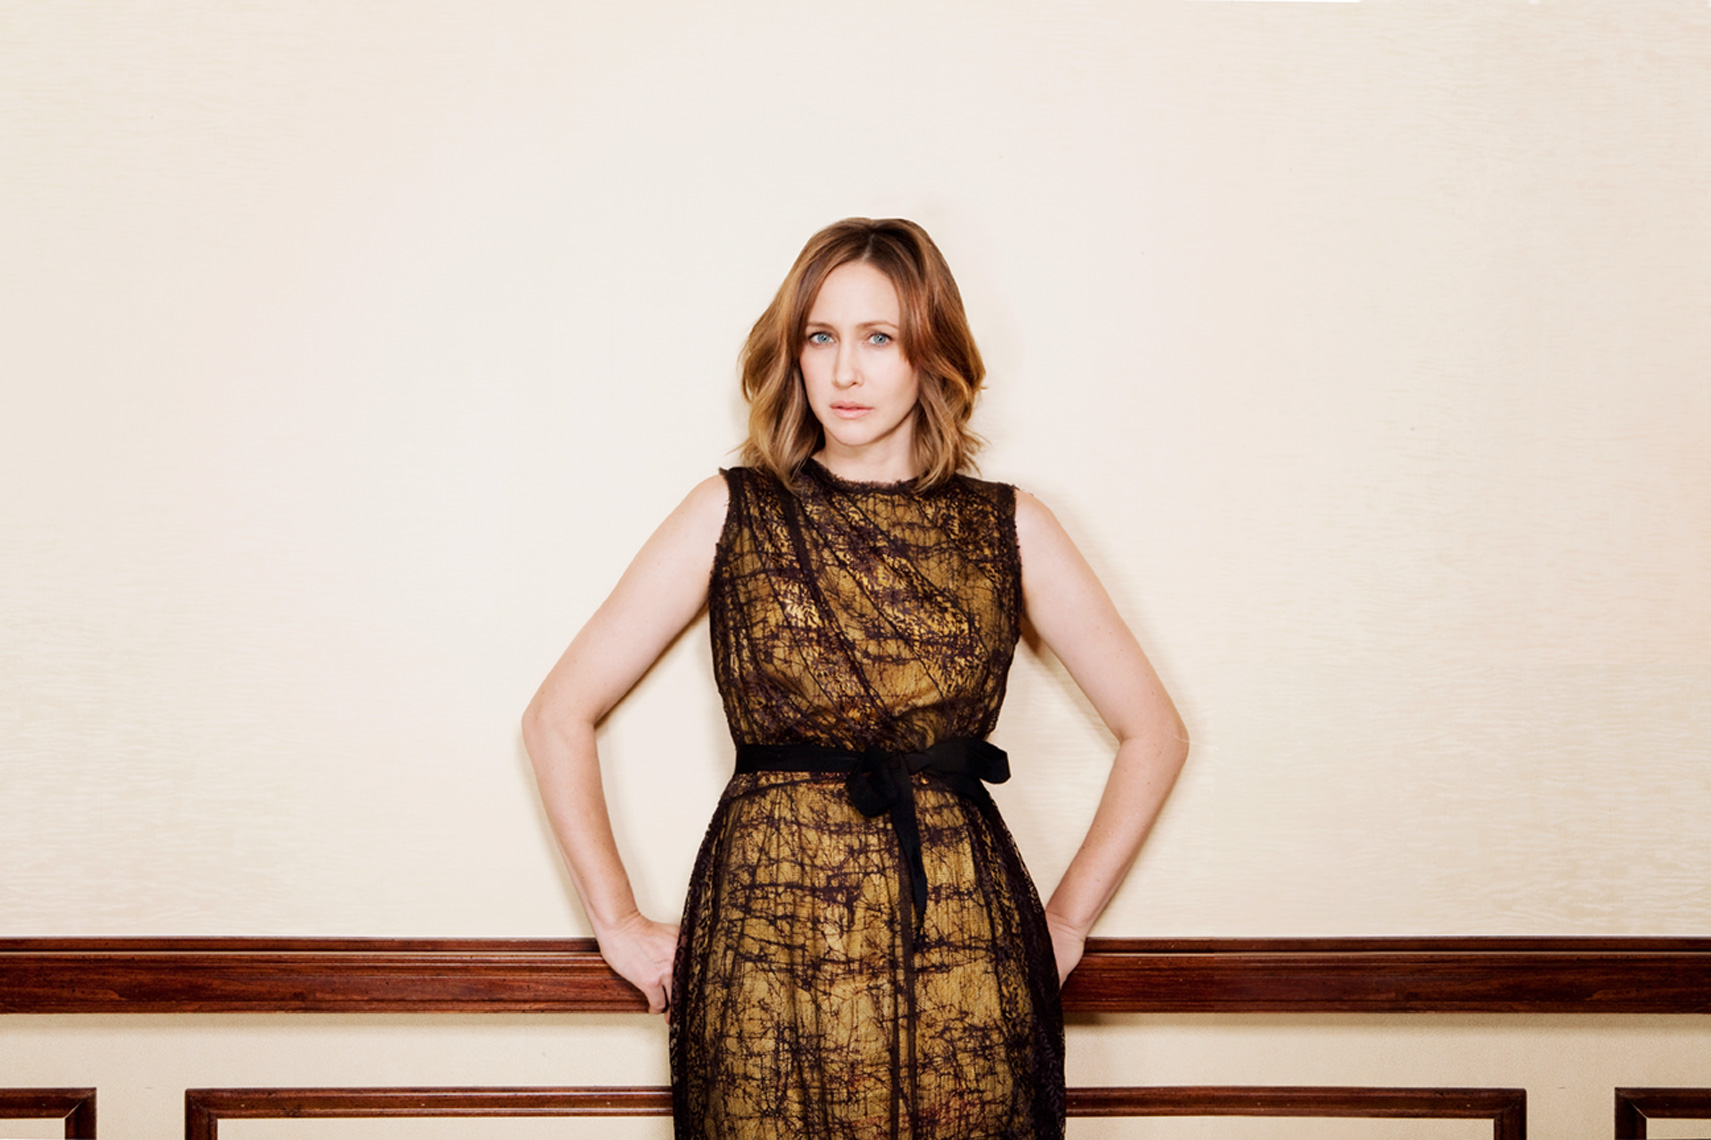 Vera Farmiga by Carrie Schechter for the Village Voice